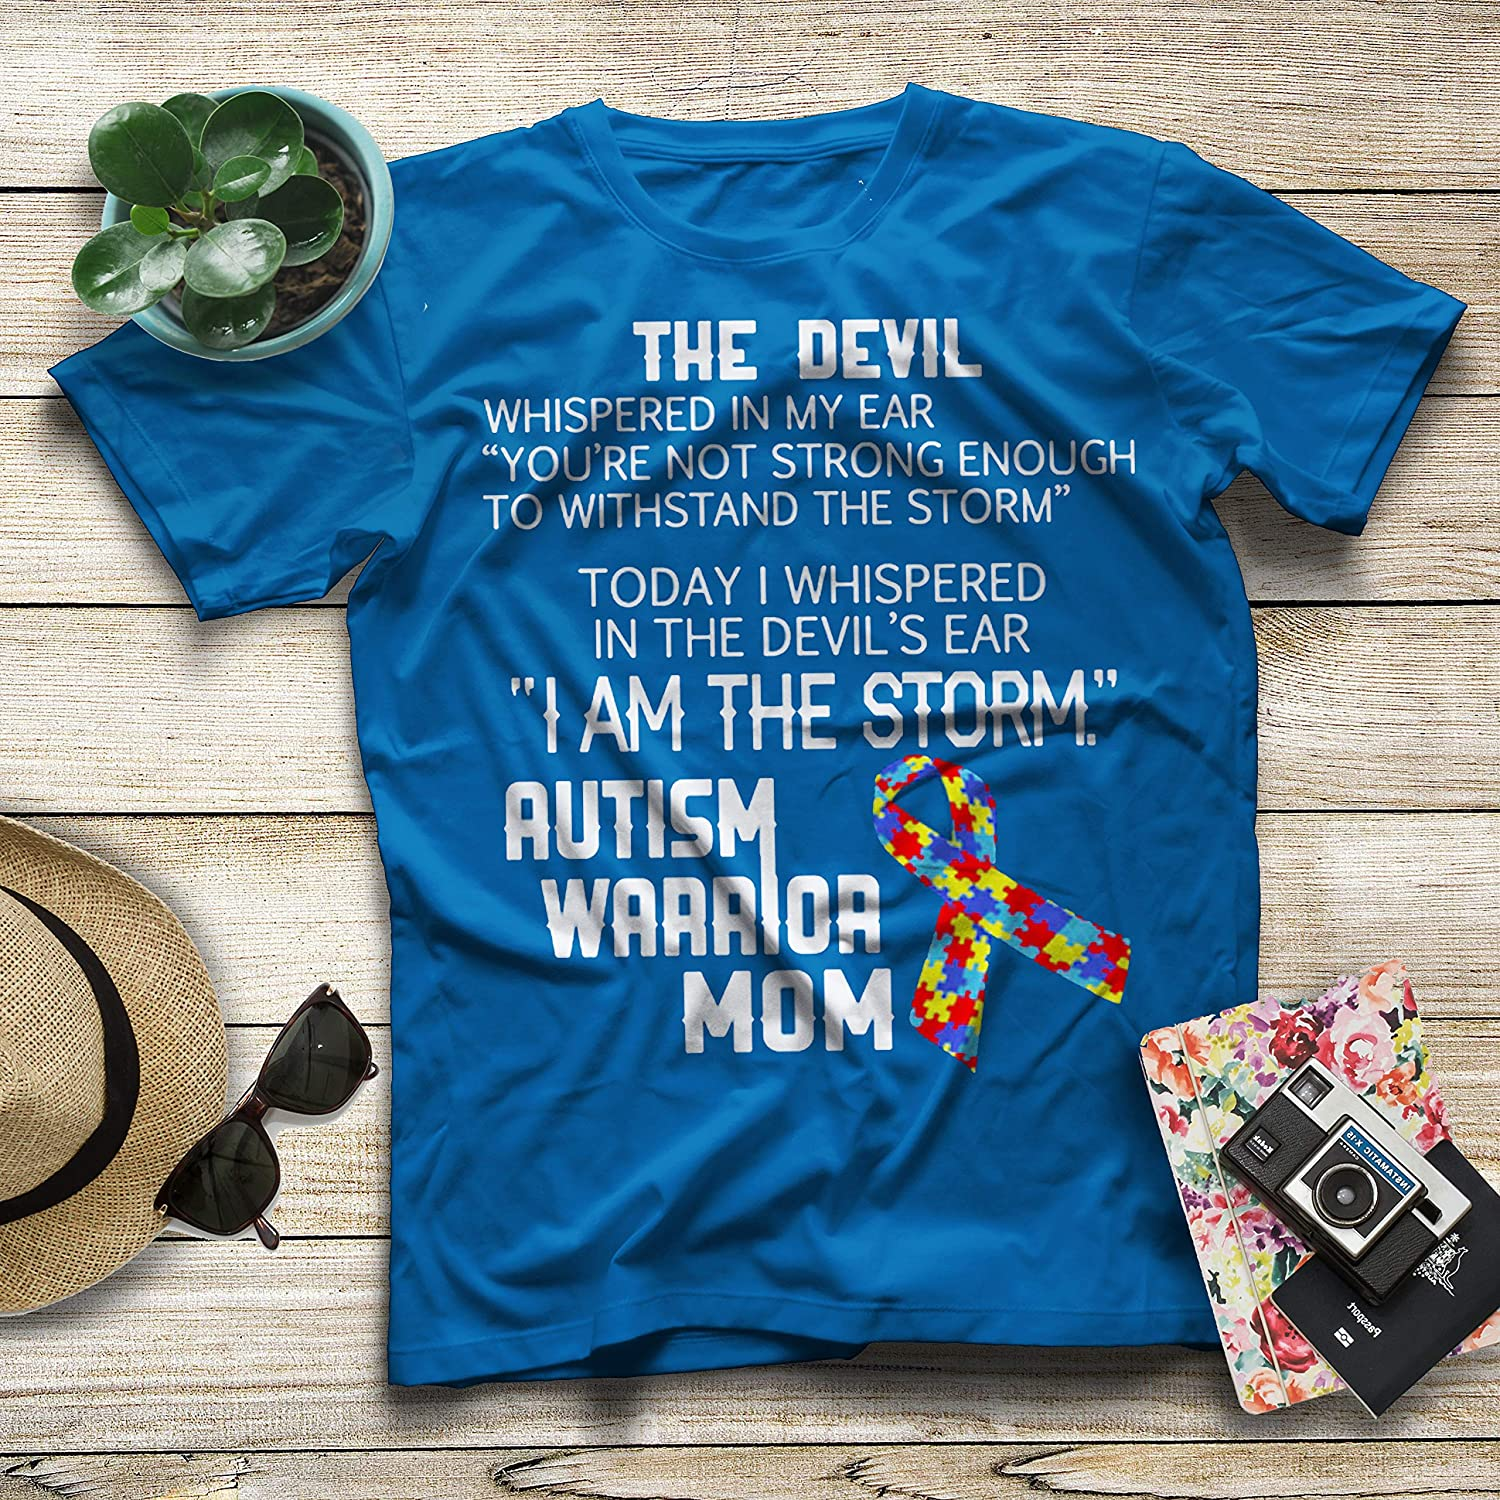 Today I Whispered in The Devils Ear I Am The Storm Autism Warrior MOM T-Shirt